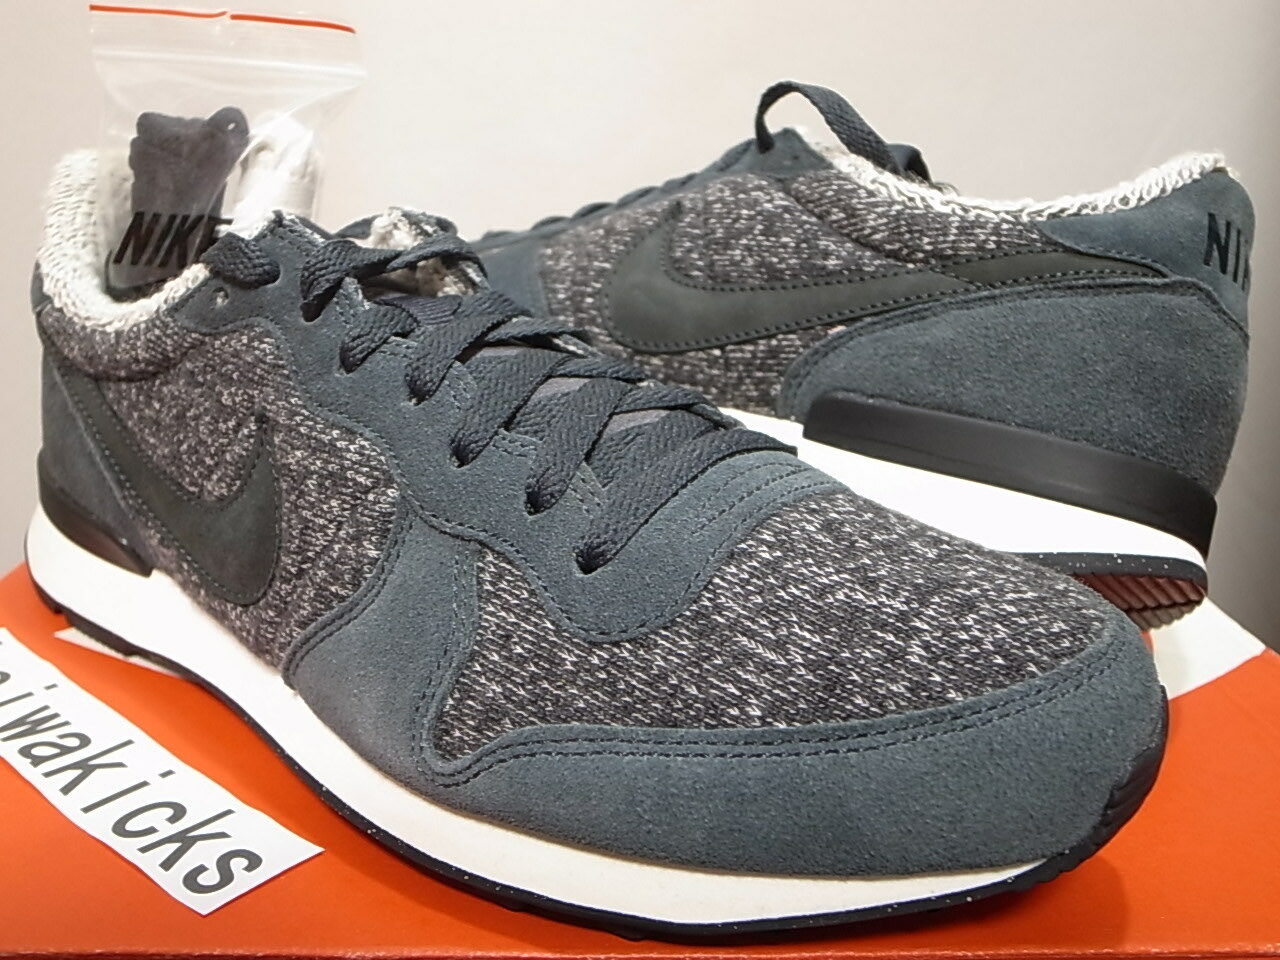 2014 LOOPWHEELER x NIKE INTERNATIONALIST PRM QS JAPAN EXCLUSIVE 637998-002 sz 10